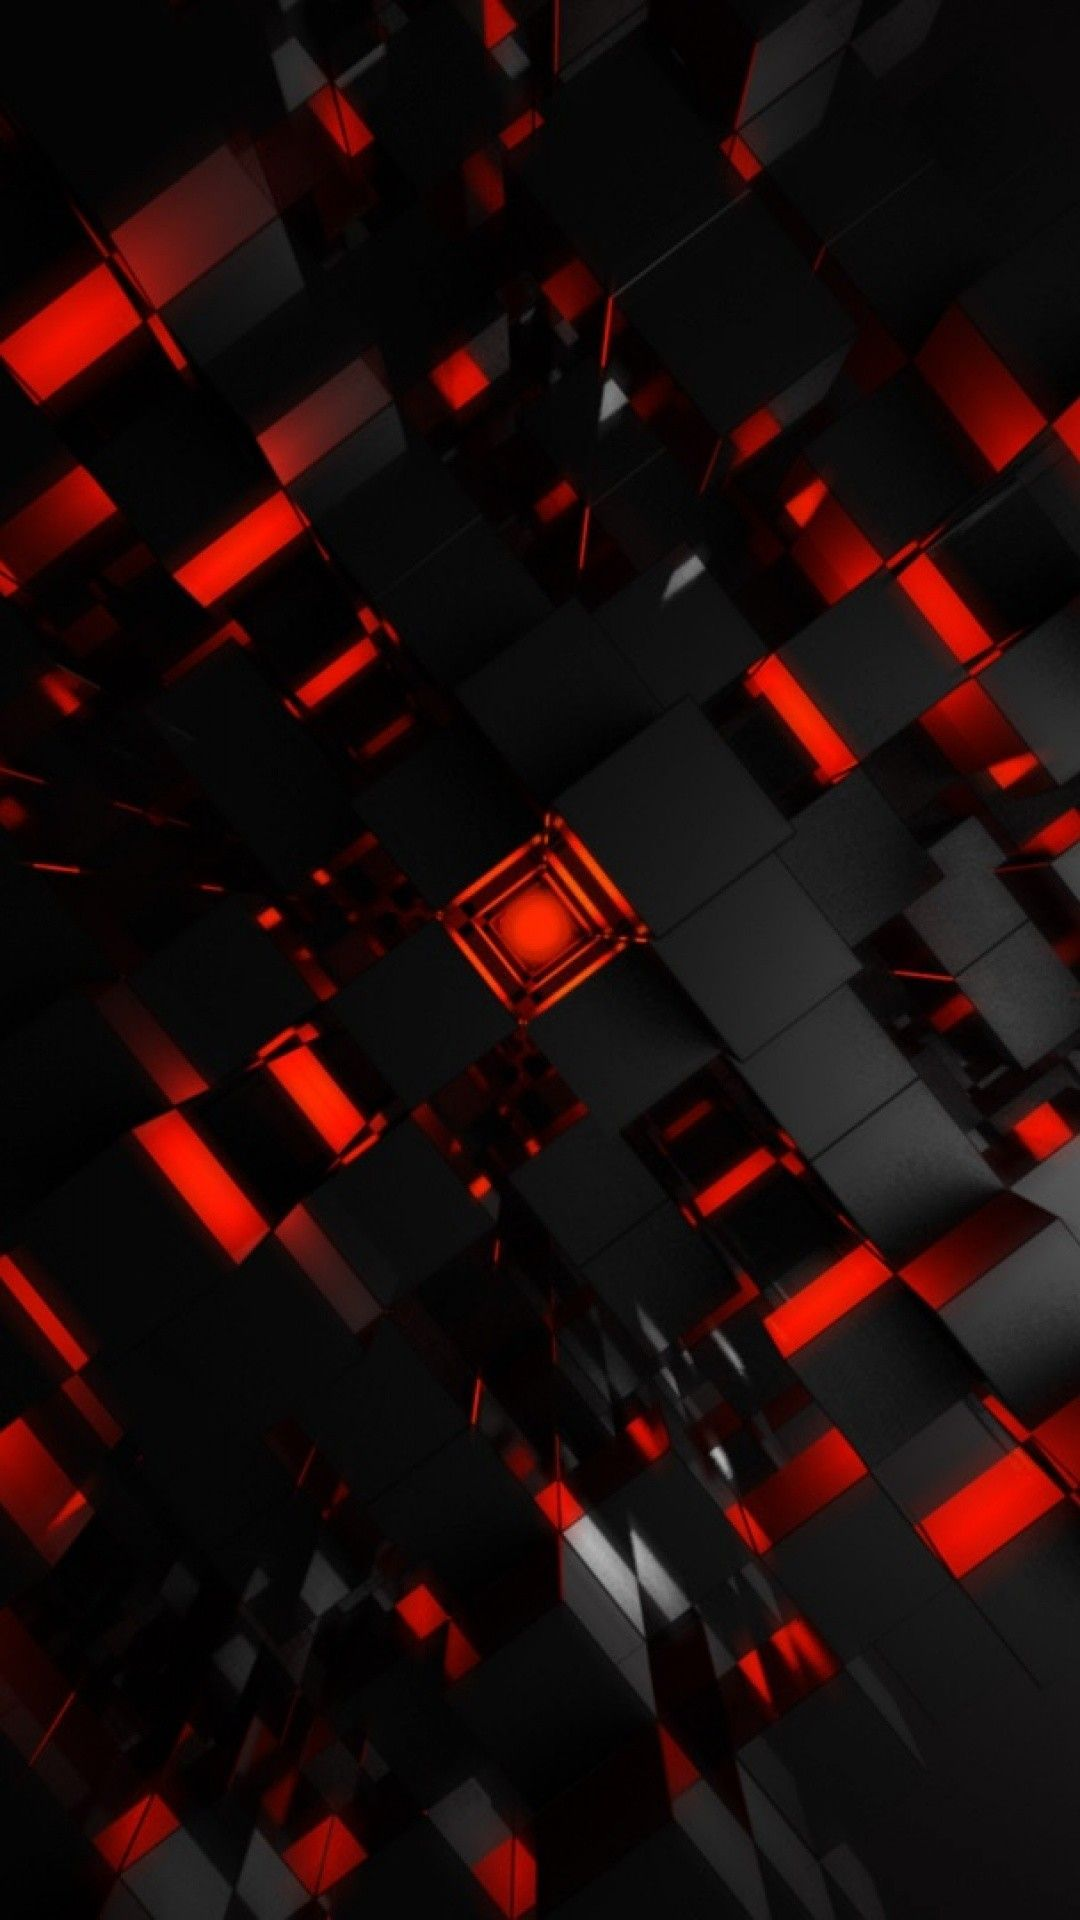 Abstract Red Hd Wallpaper Android In 2020 Red Wallpaper Iphone 7 Wallpapers Black Android Wallpaper